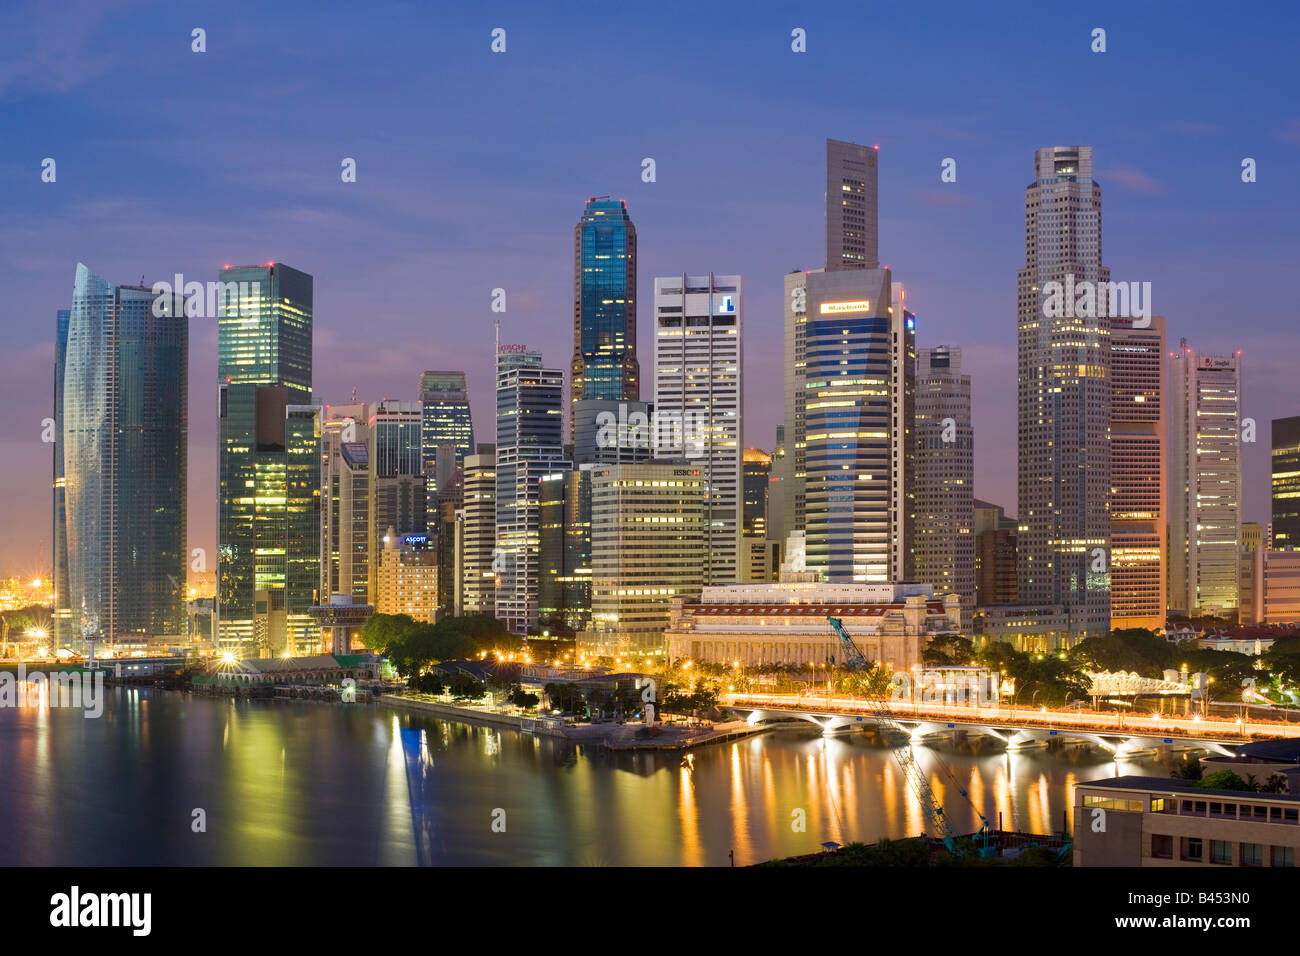 Singapour vue à l'aube Photo Stock